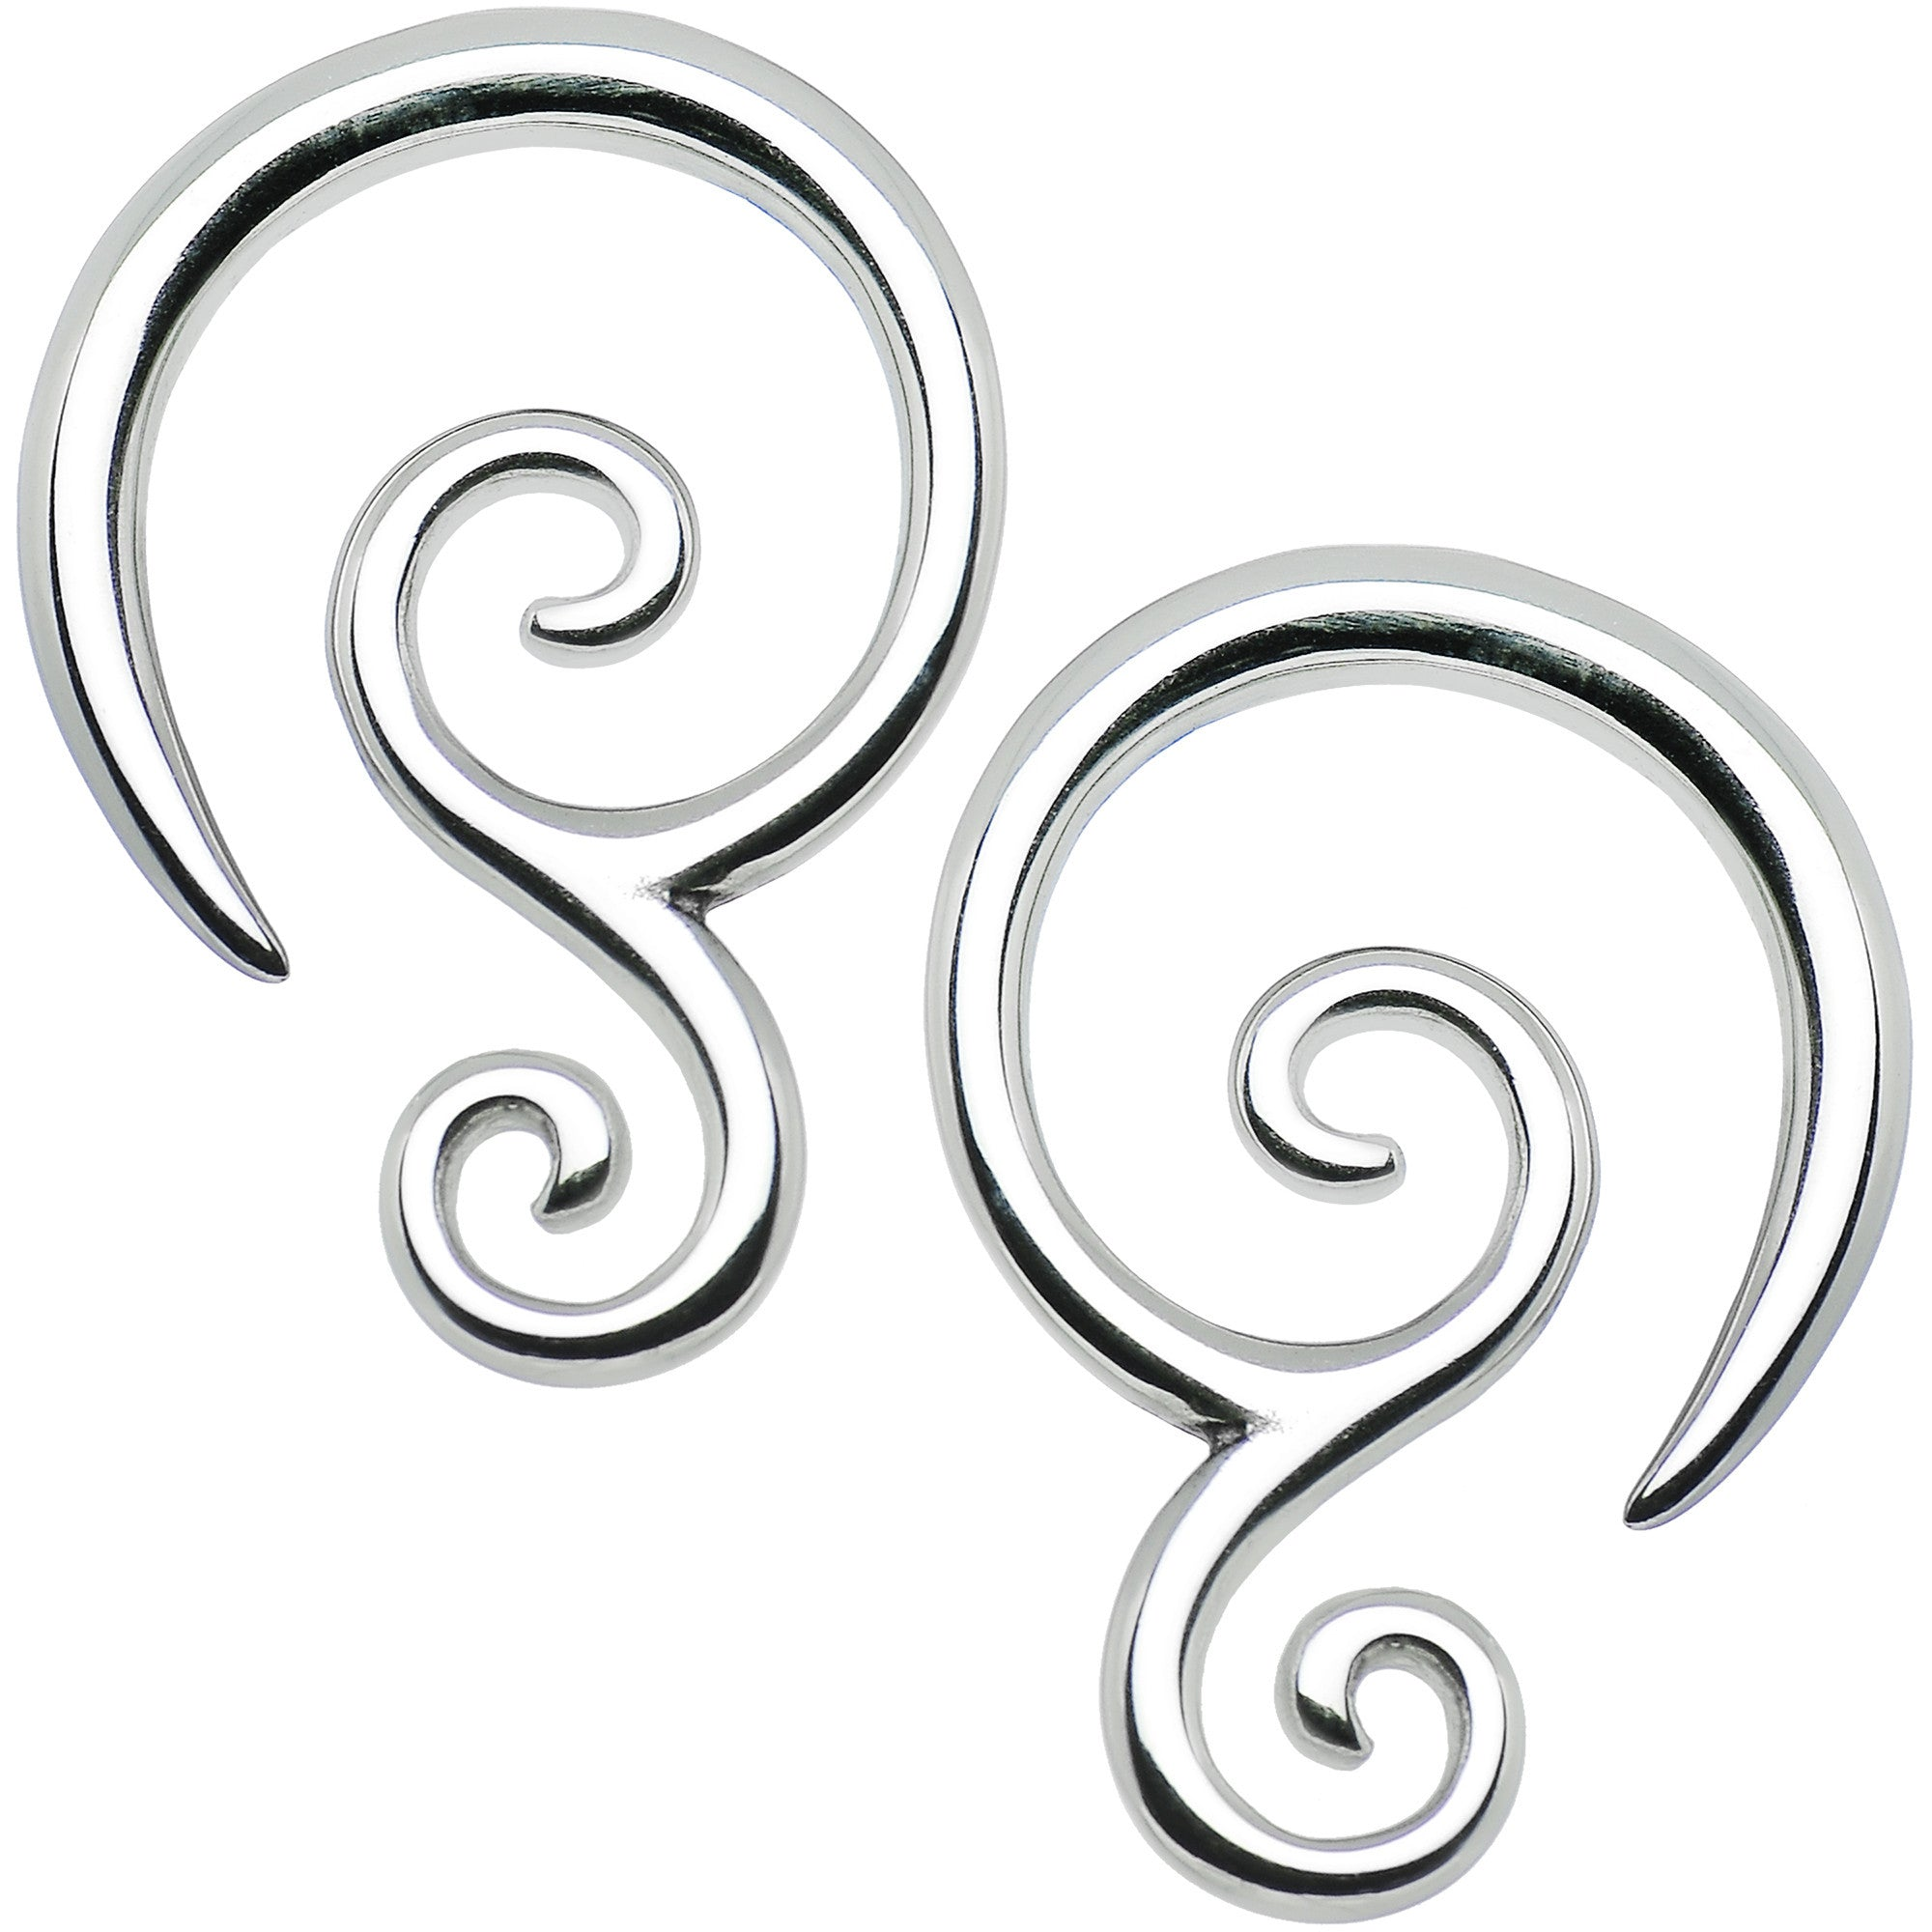 8 Gauge Stainless Steel Double Swirl Curved Taper Set